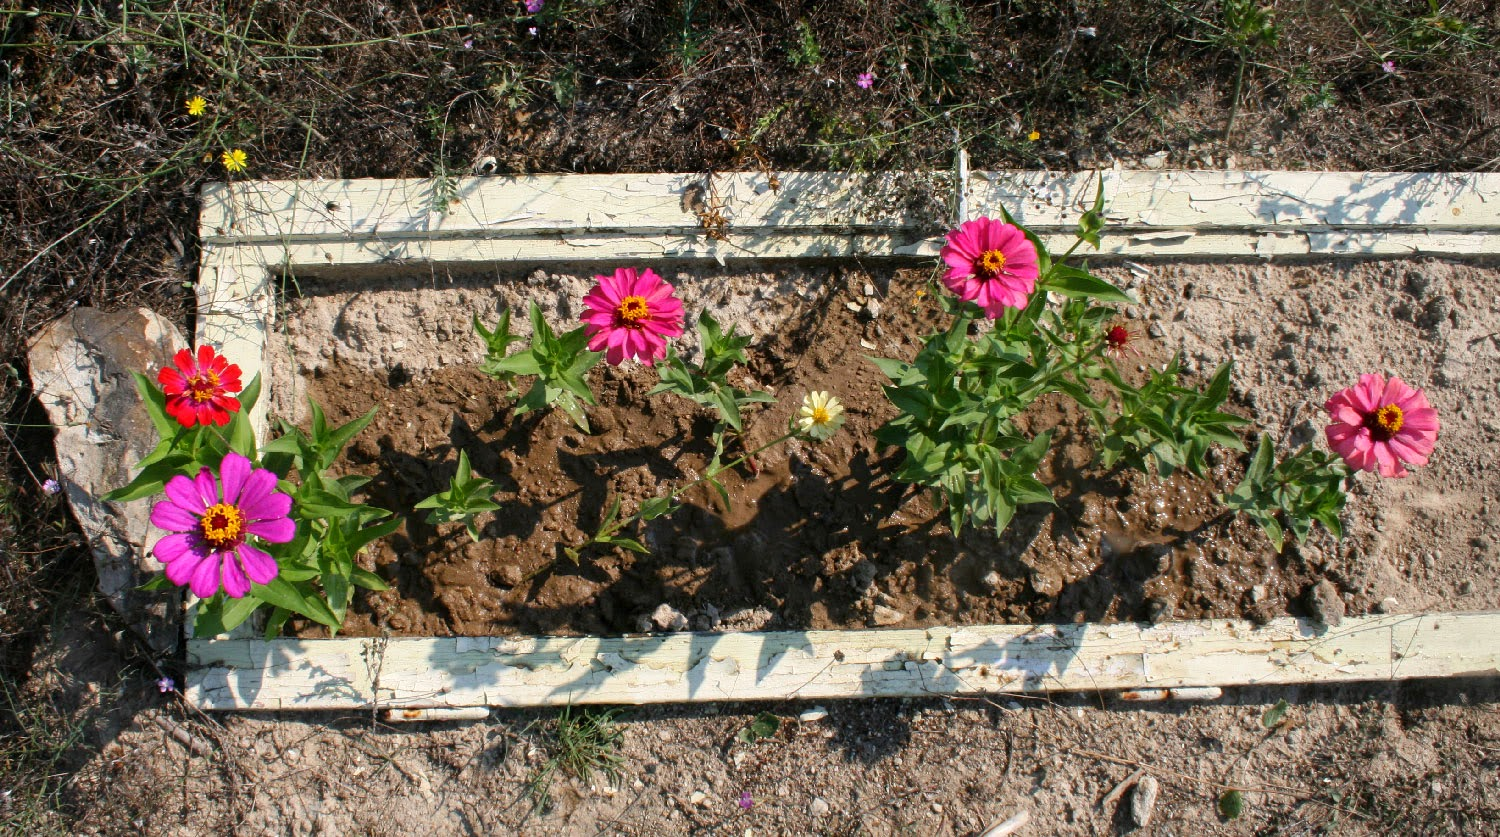 Overhead view of the Zinnias